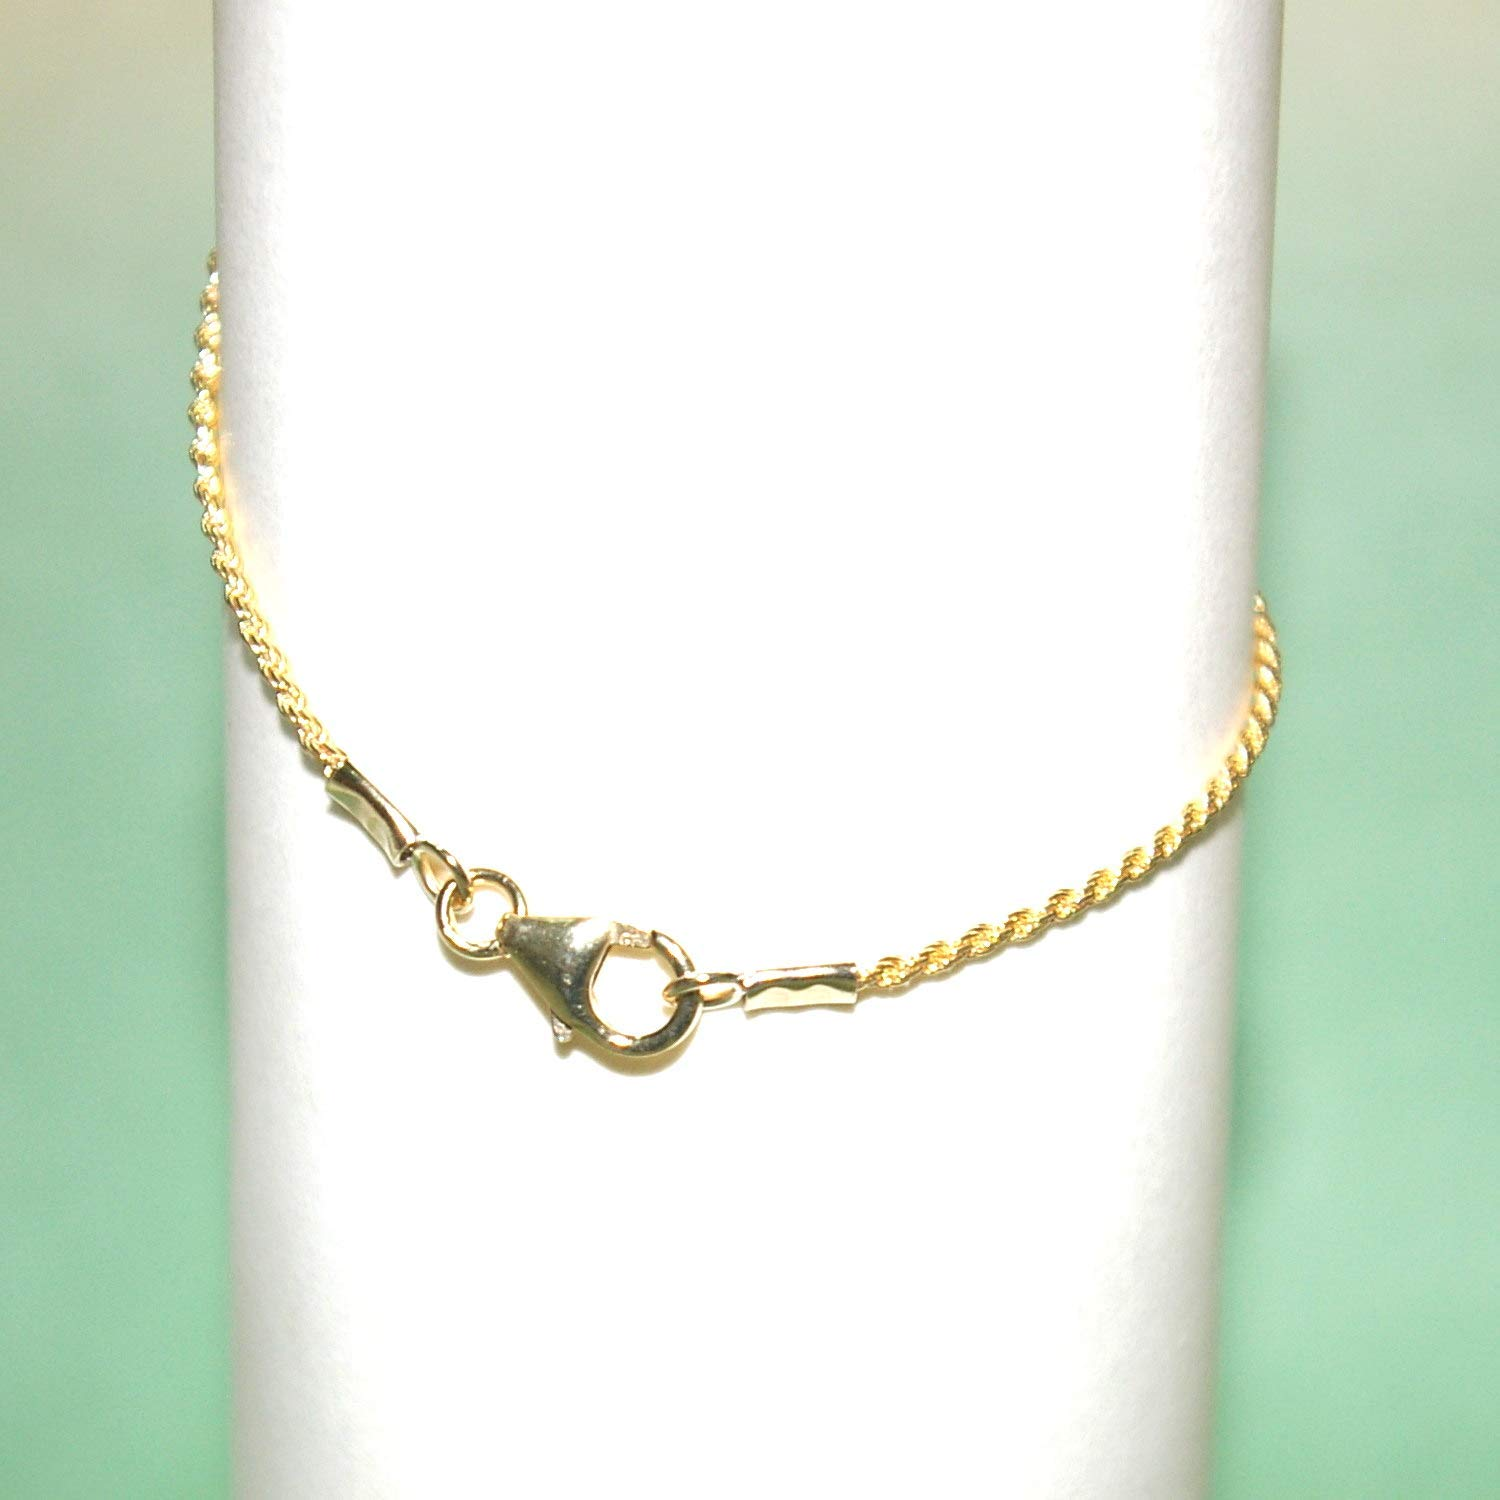 Leslies 10k Yellow Gold Polished 1.5mm Rope Pendant Chain Bracelet 8-24